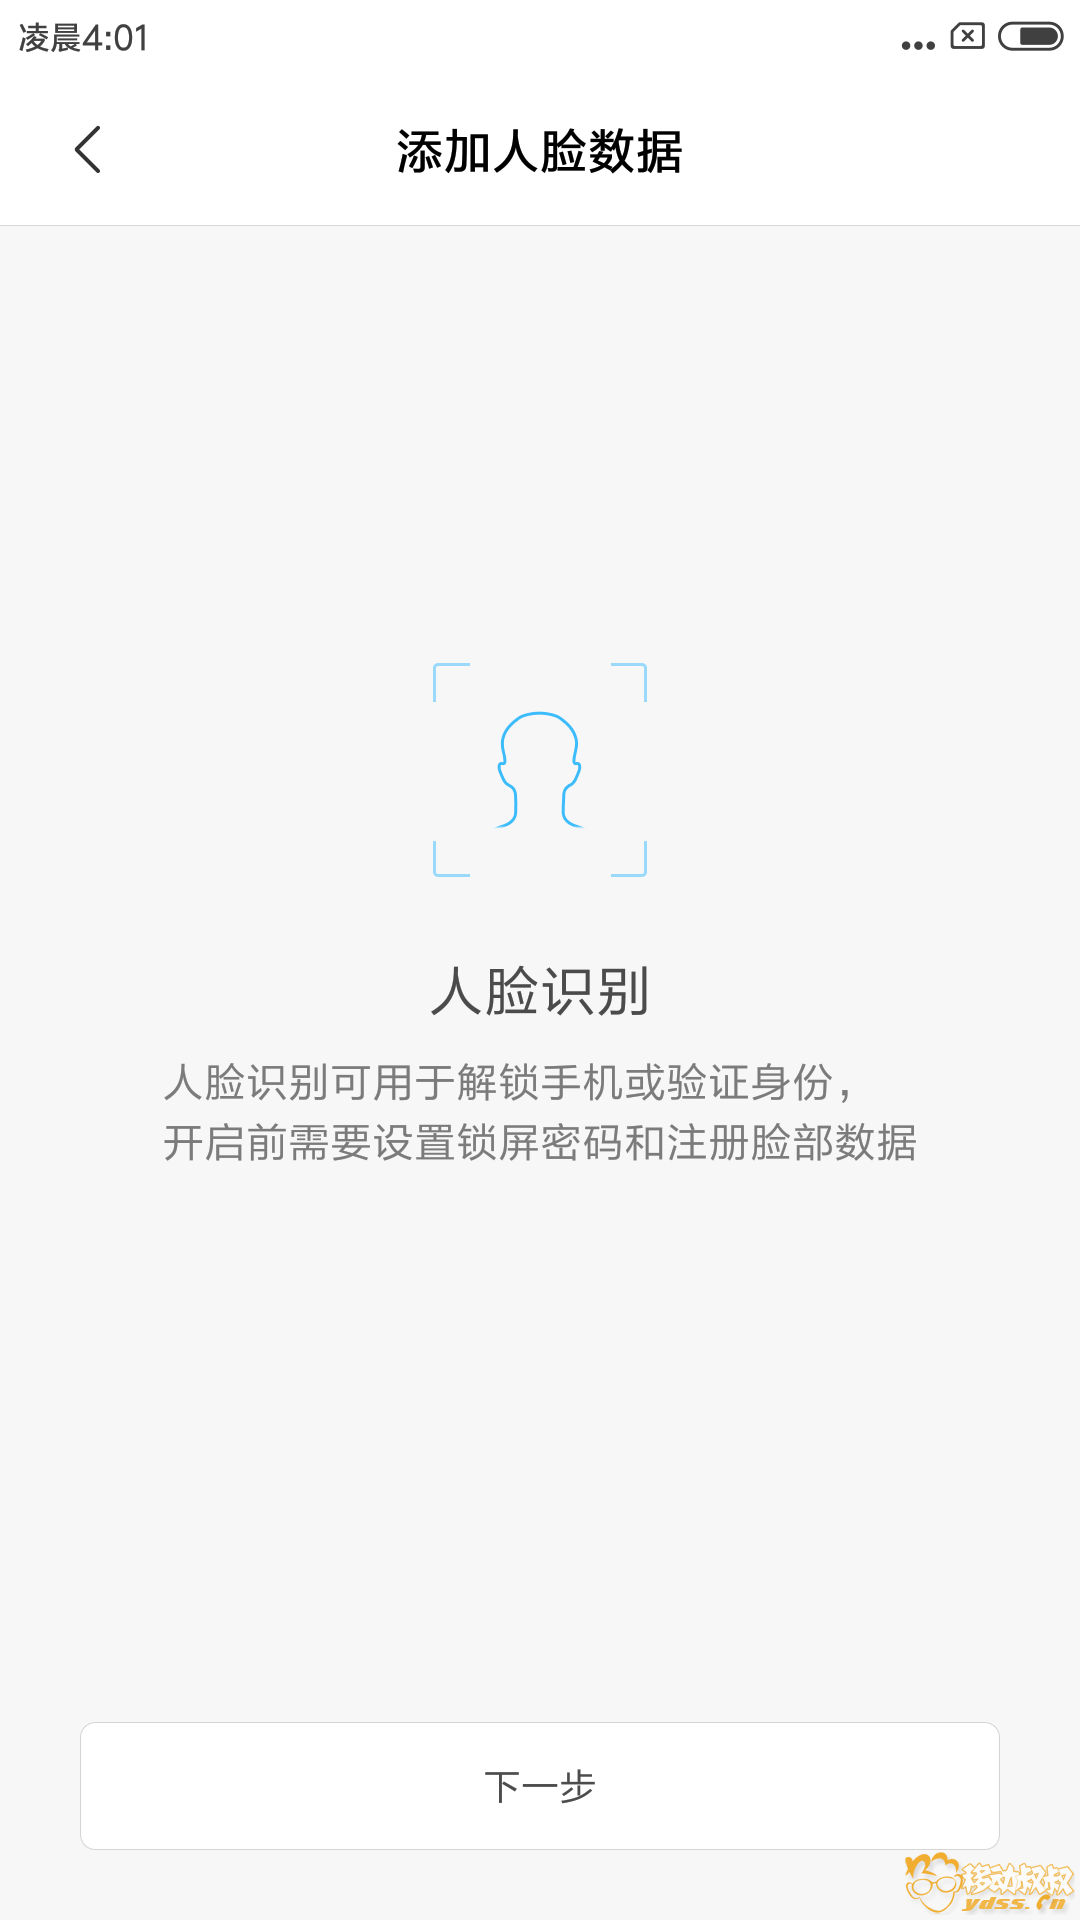 Screenshot_1971-03-29-04-01-36-700_com.android.systemui.png